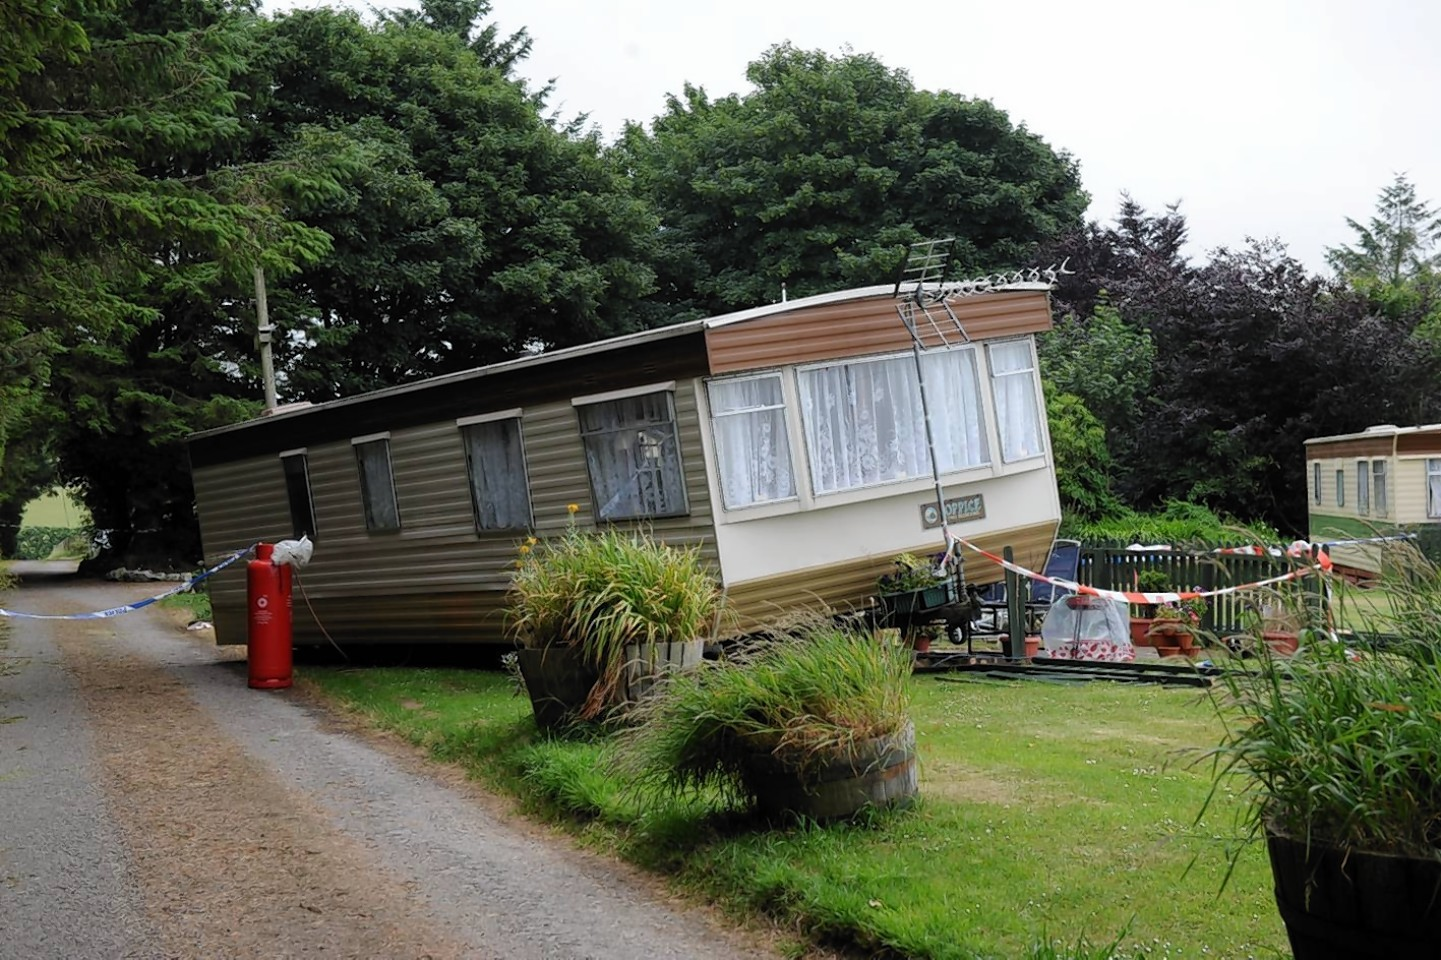 The scene of the accident at East Balthangie Caravan Park